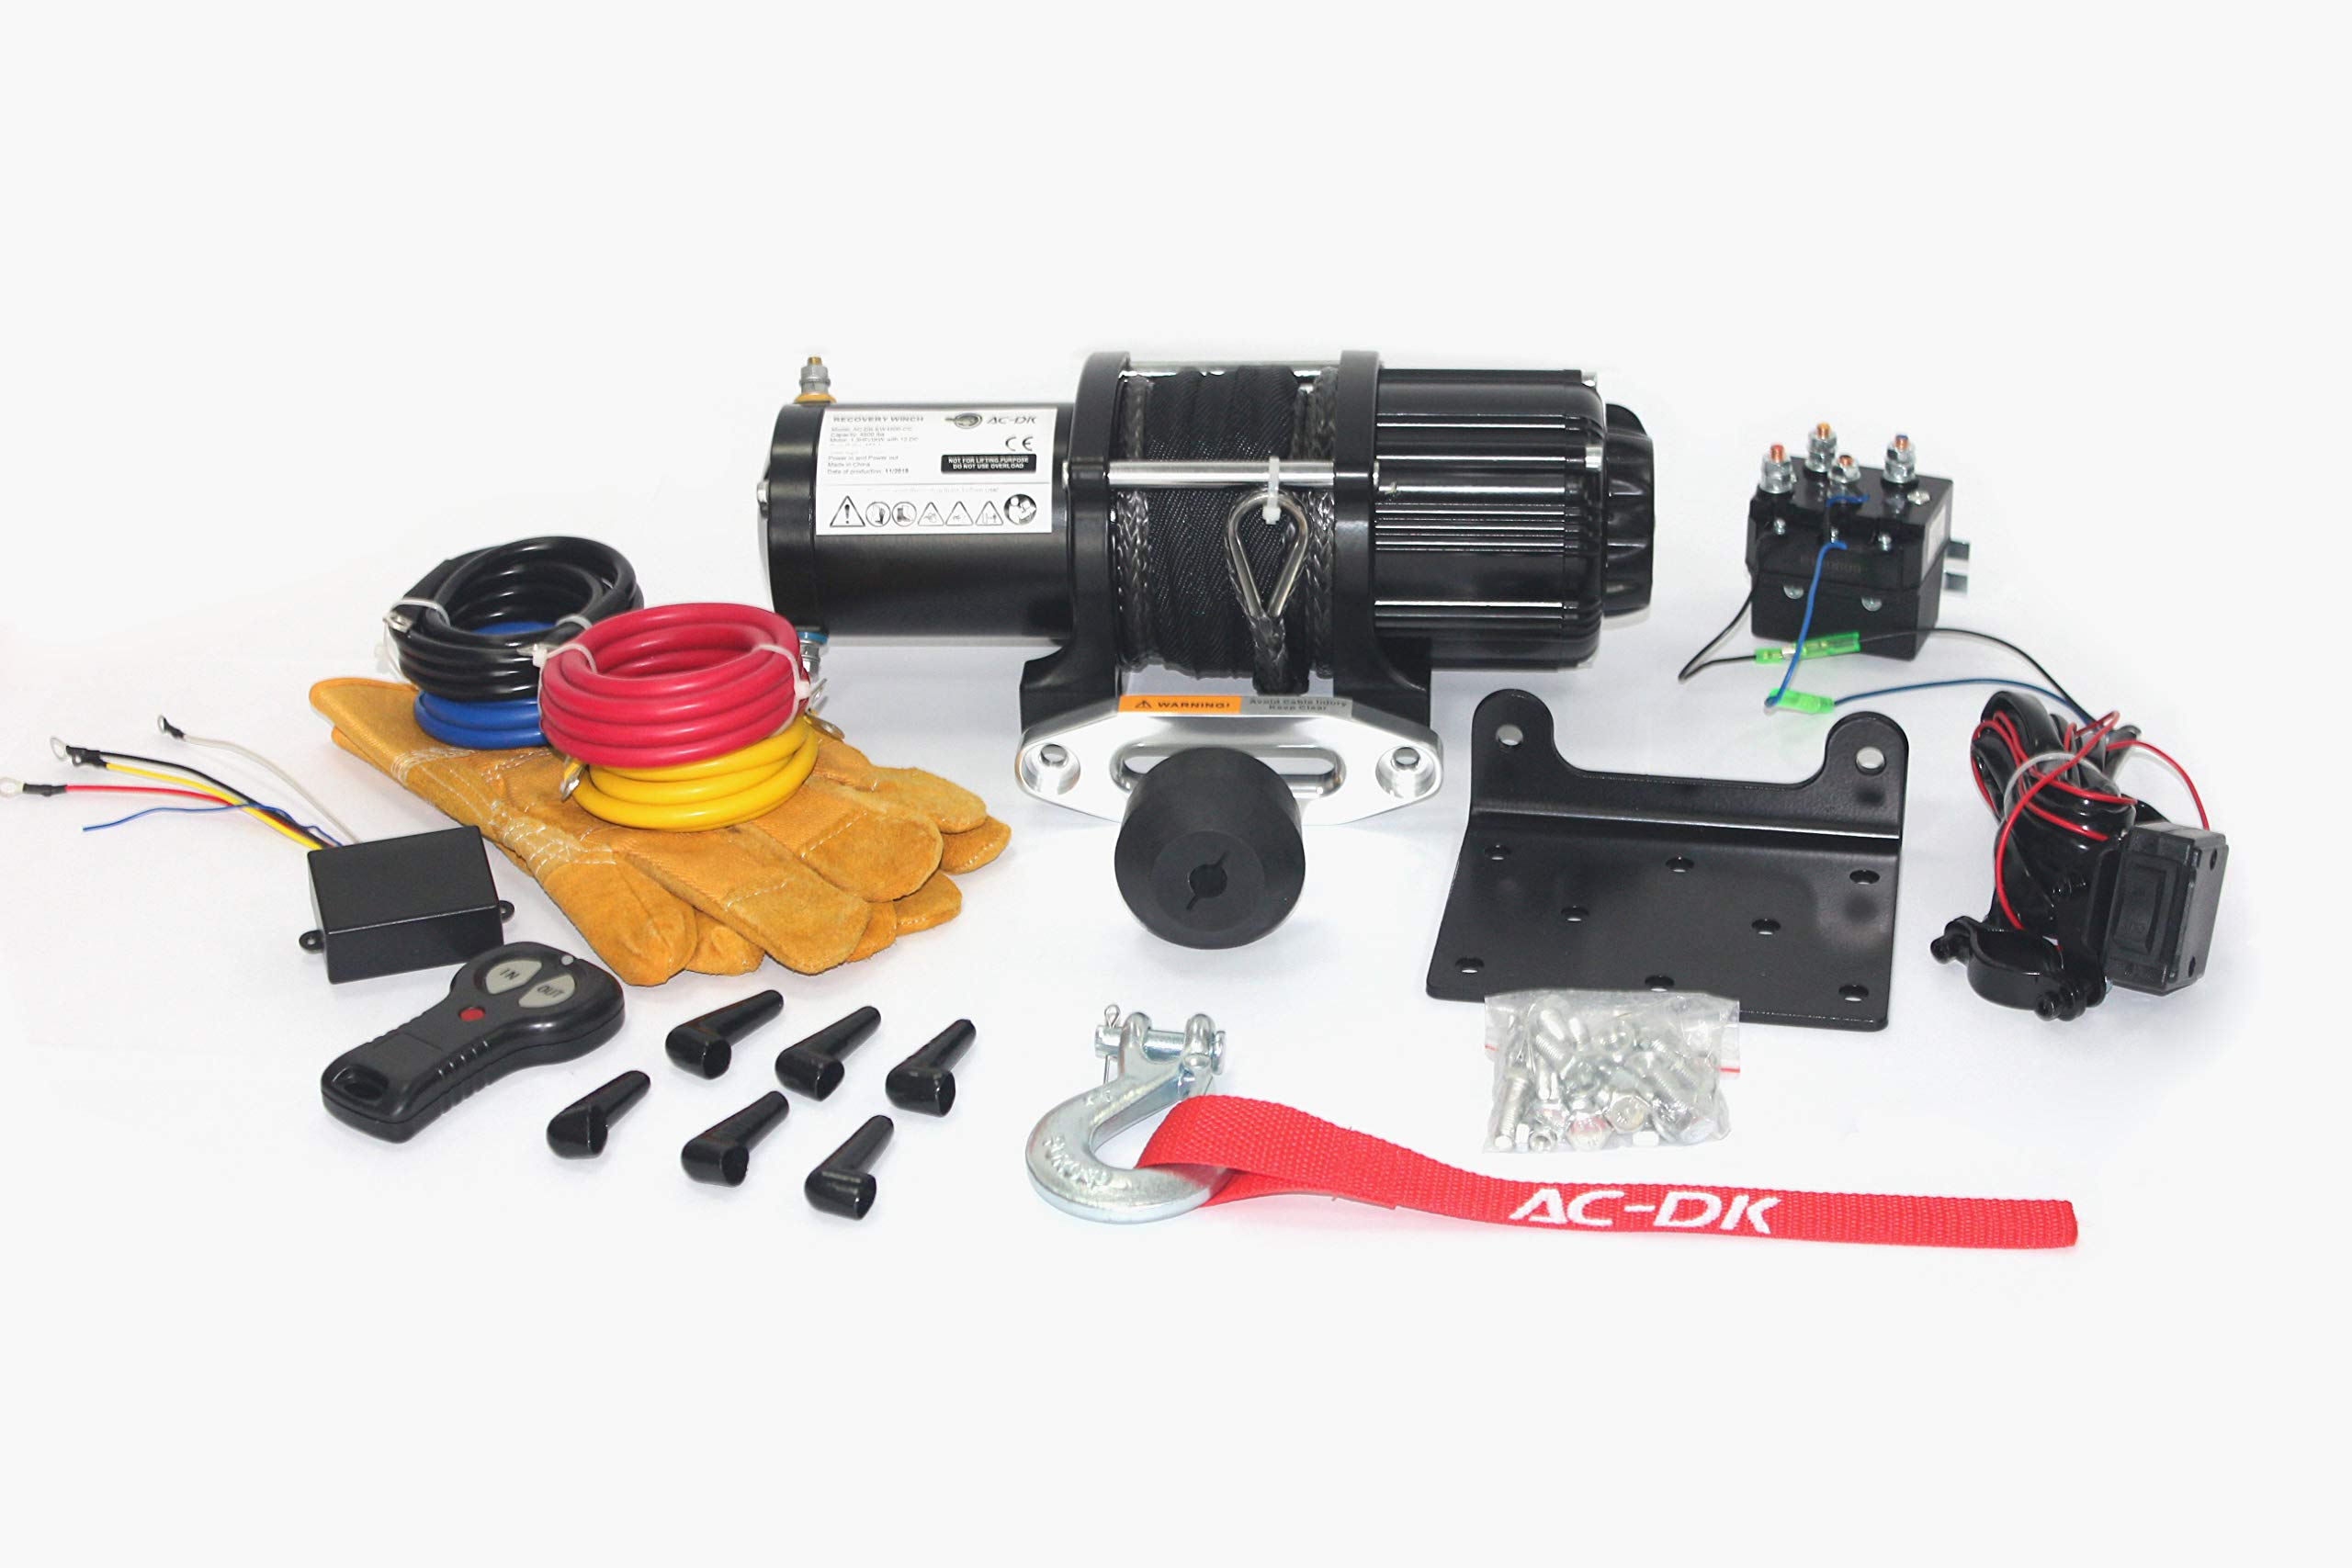 AC-DK 12V 4500lb ATV Winch UTV Winch Electric Winch Set for 4x4 Off Road (4500lb Winch with Synthetic Rope)